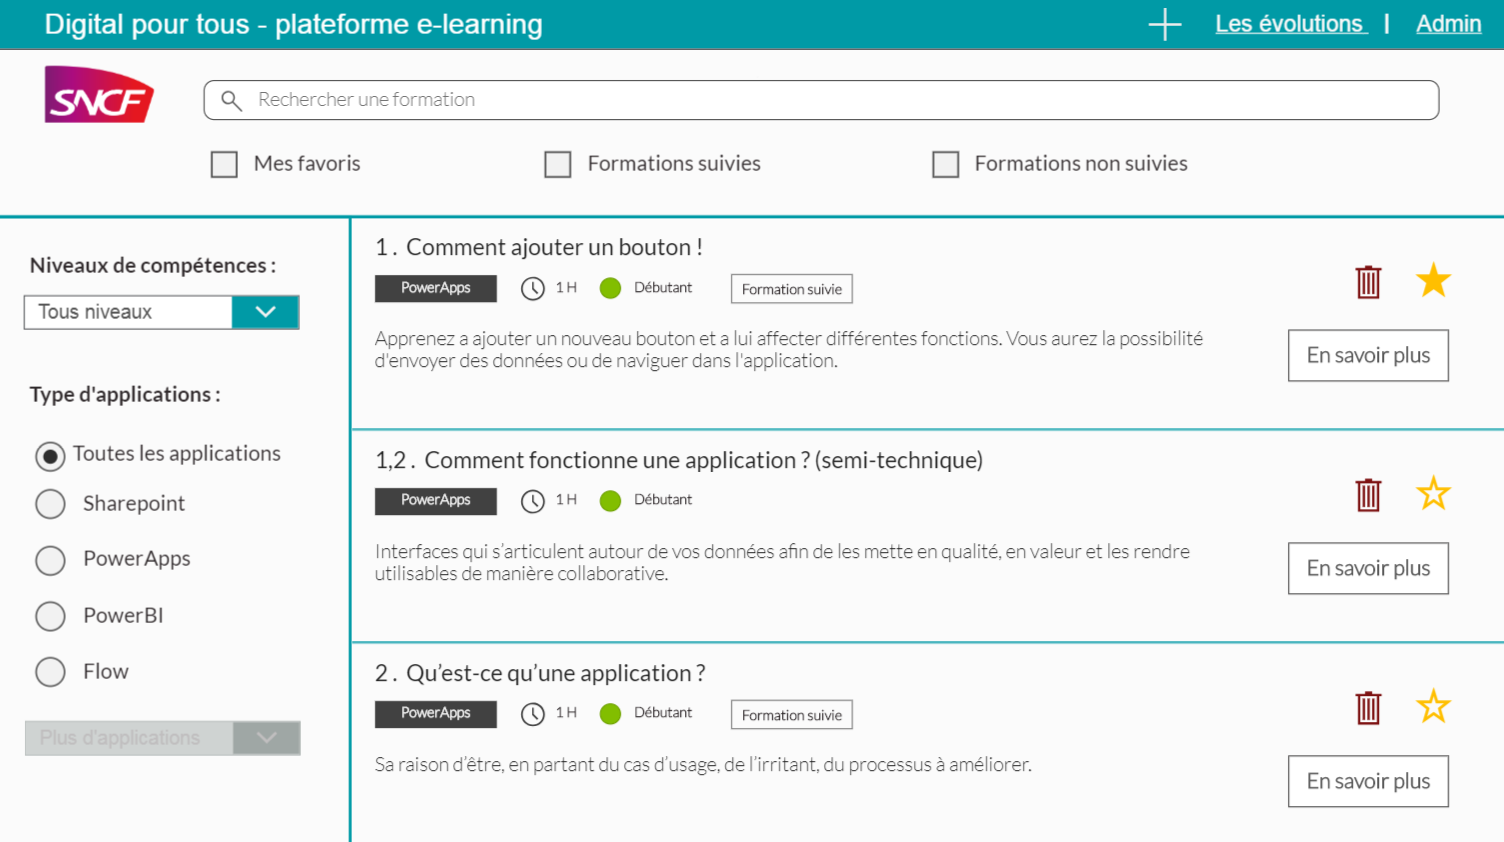 Screenshot of E-Learning platform